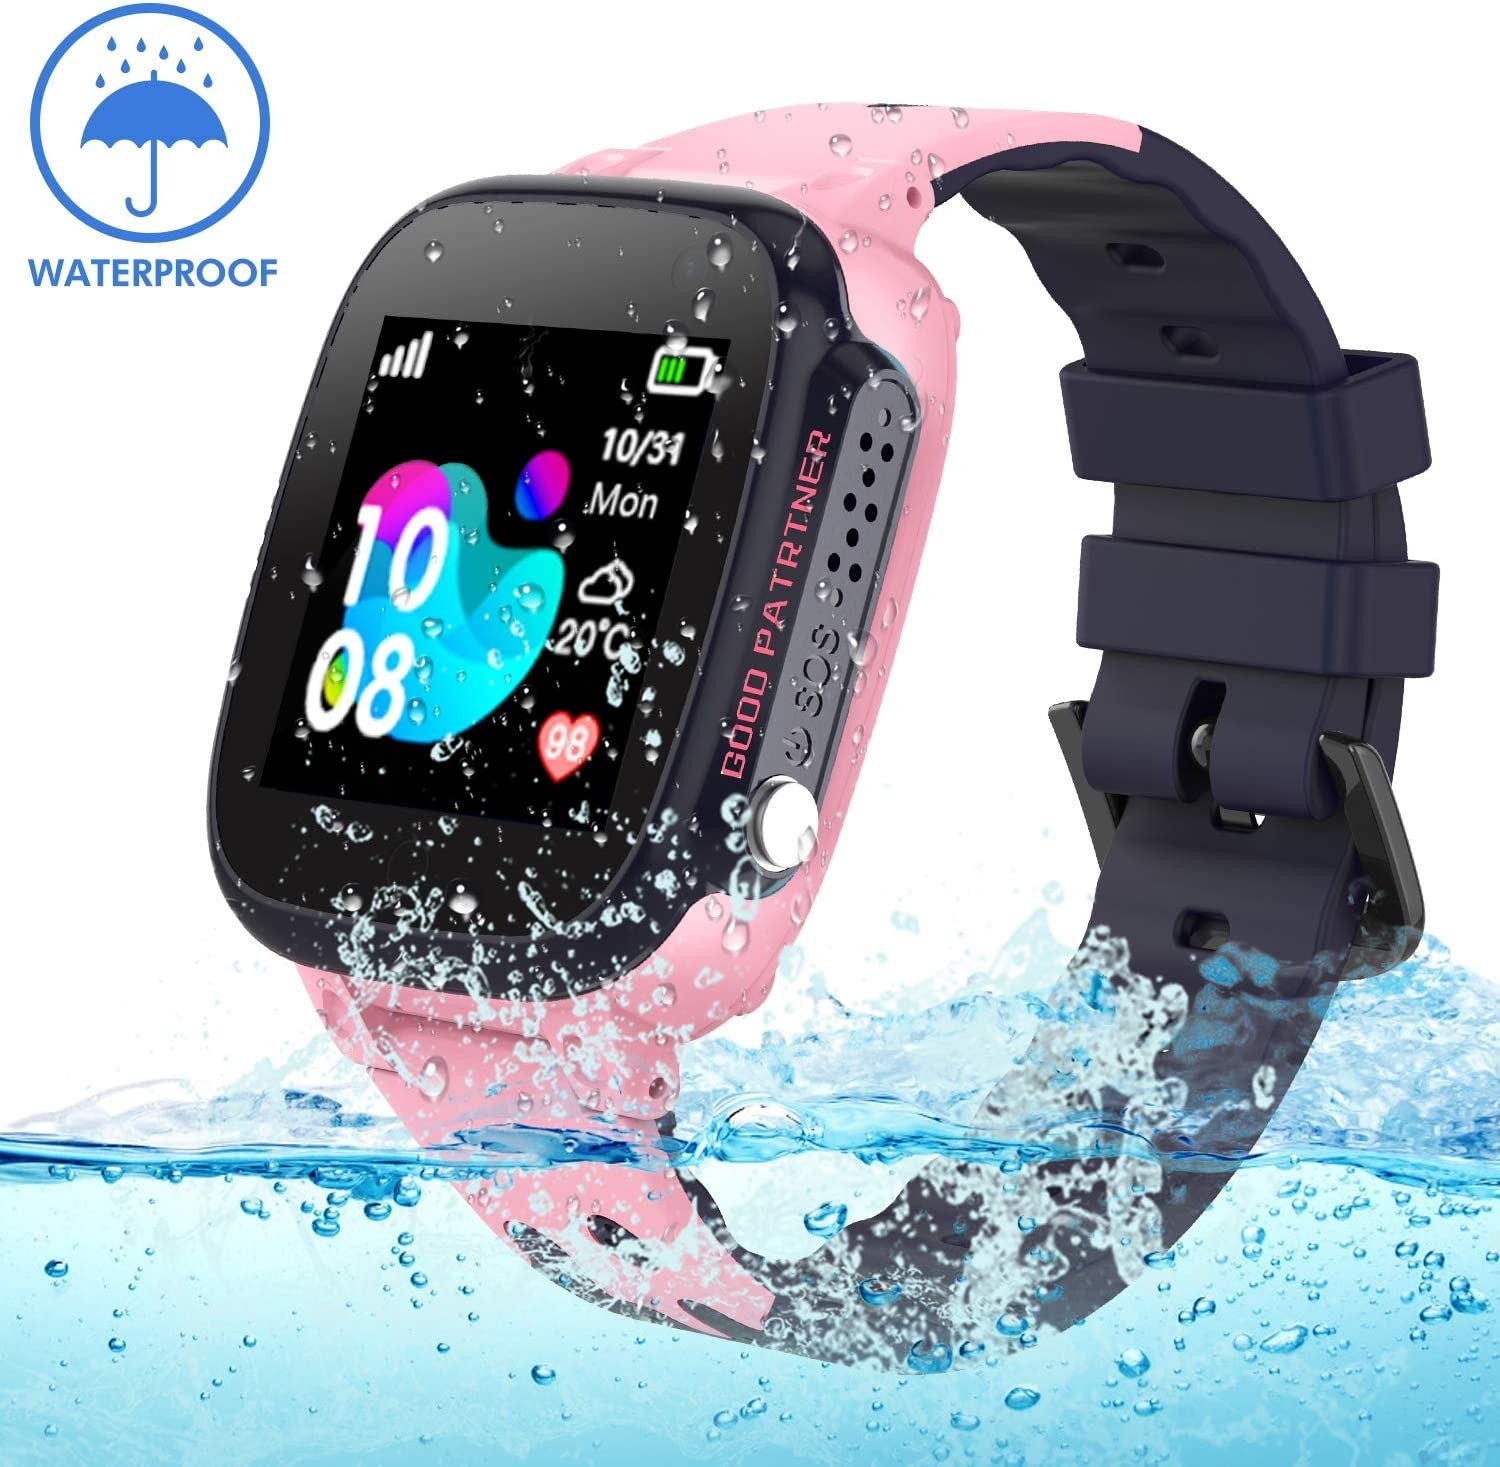 Kids Smartwatch Waterproof with GPS Tracker, Smart Watch Phone Compatible Ios Android for Children 3-12 Girls Boys SOS Call Remote Camera Two way call ...